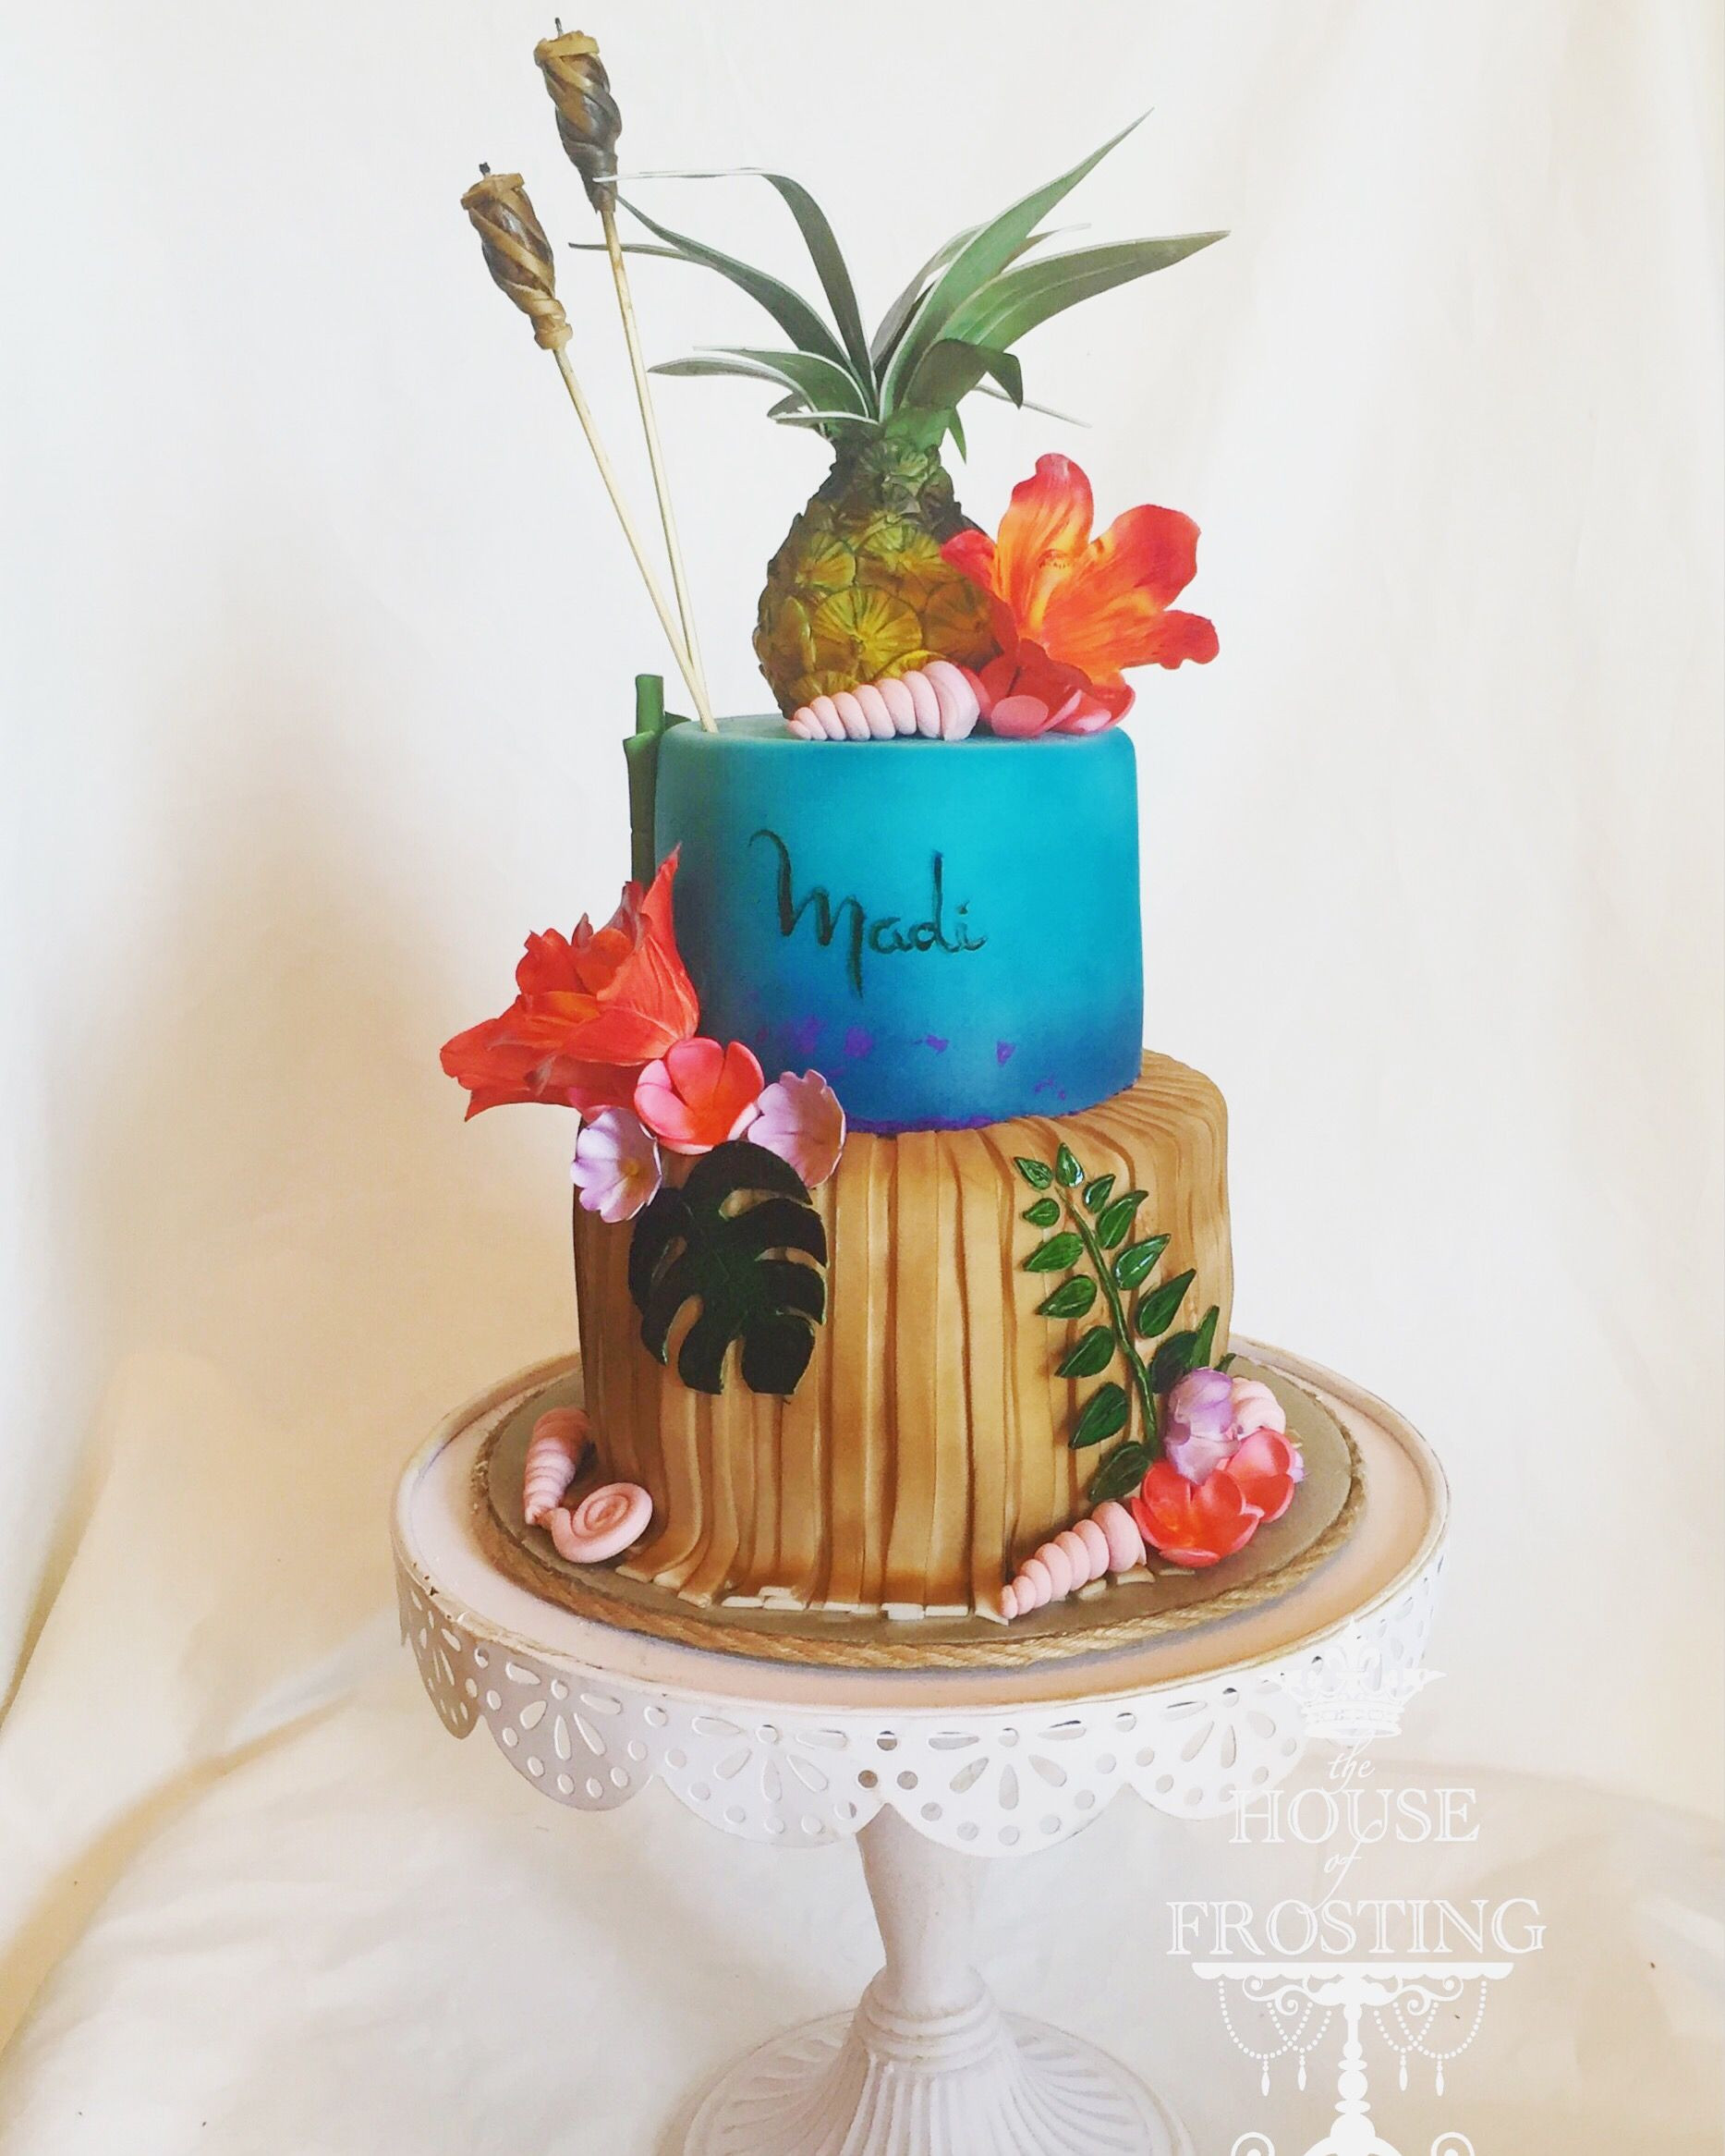 Carnation Flower Fondant Inspirational Hawaiian Birthday Cake with Fondant Tiki torch Candles